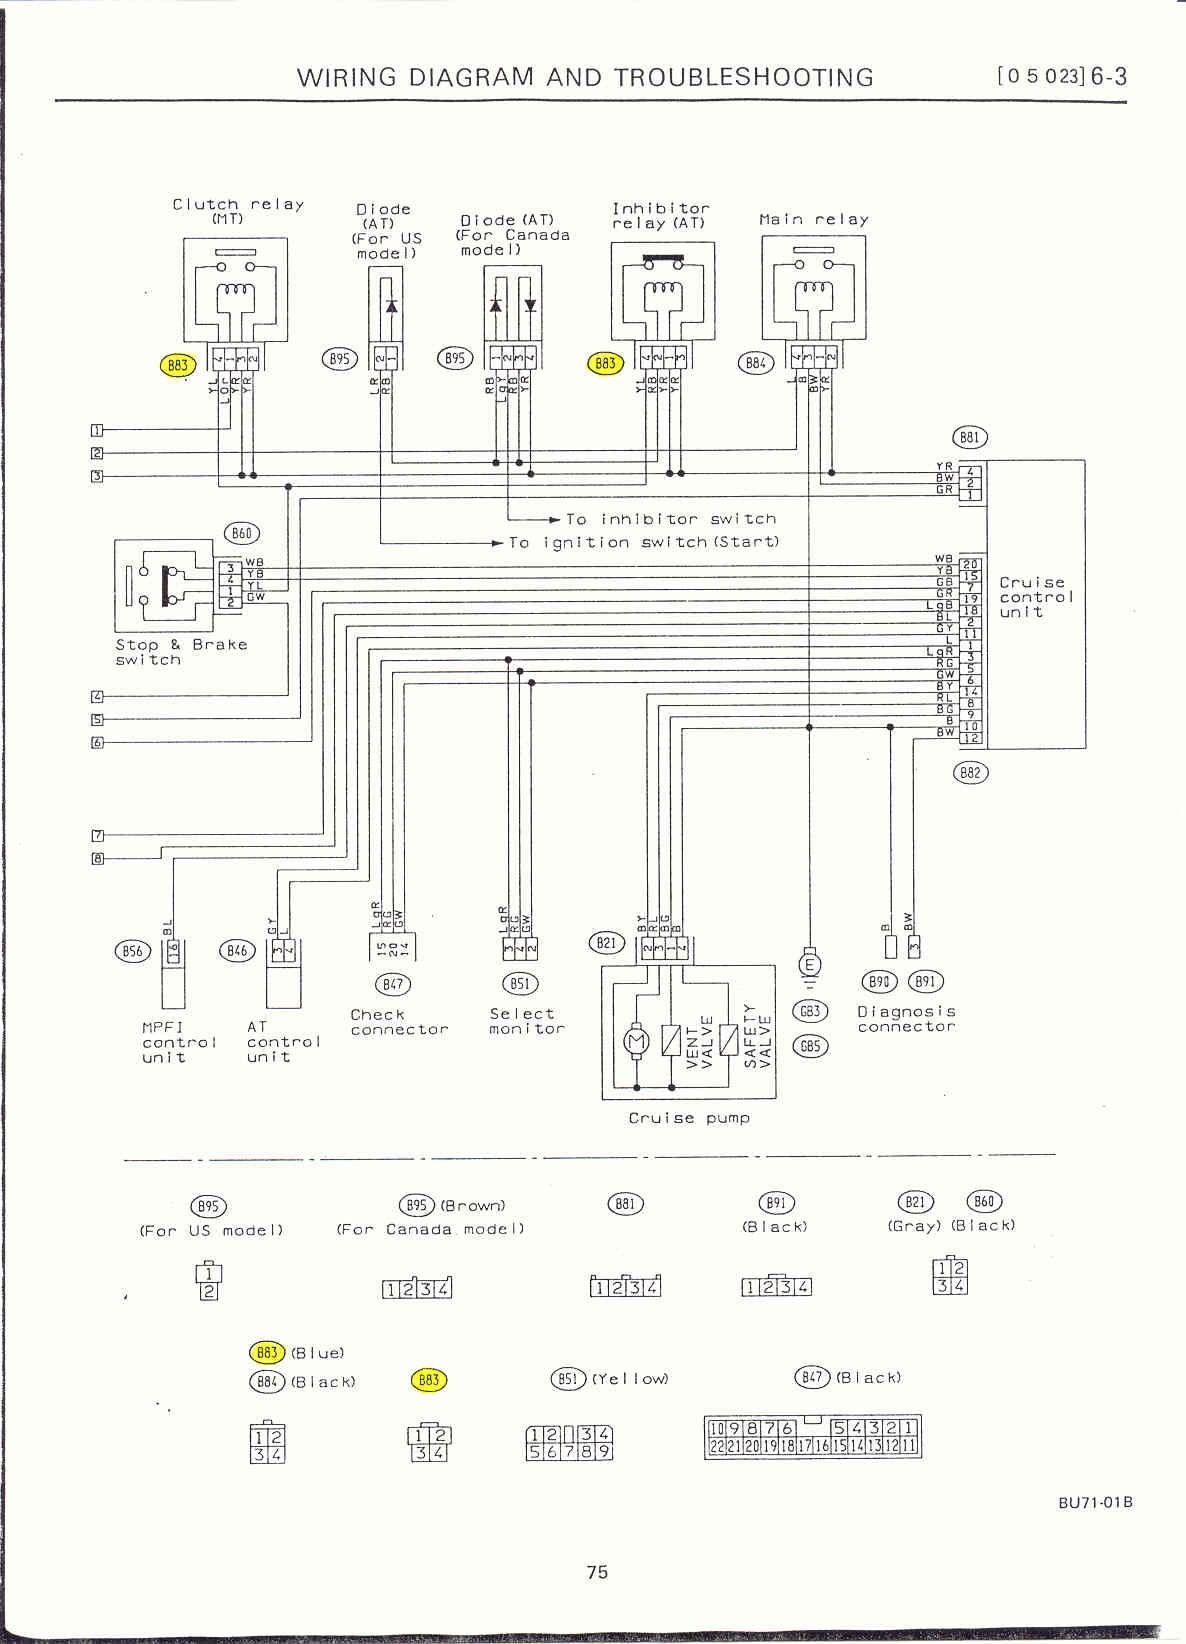 Subaru Justy Wiring Diagram Smart Diagrams • Wiring